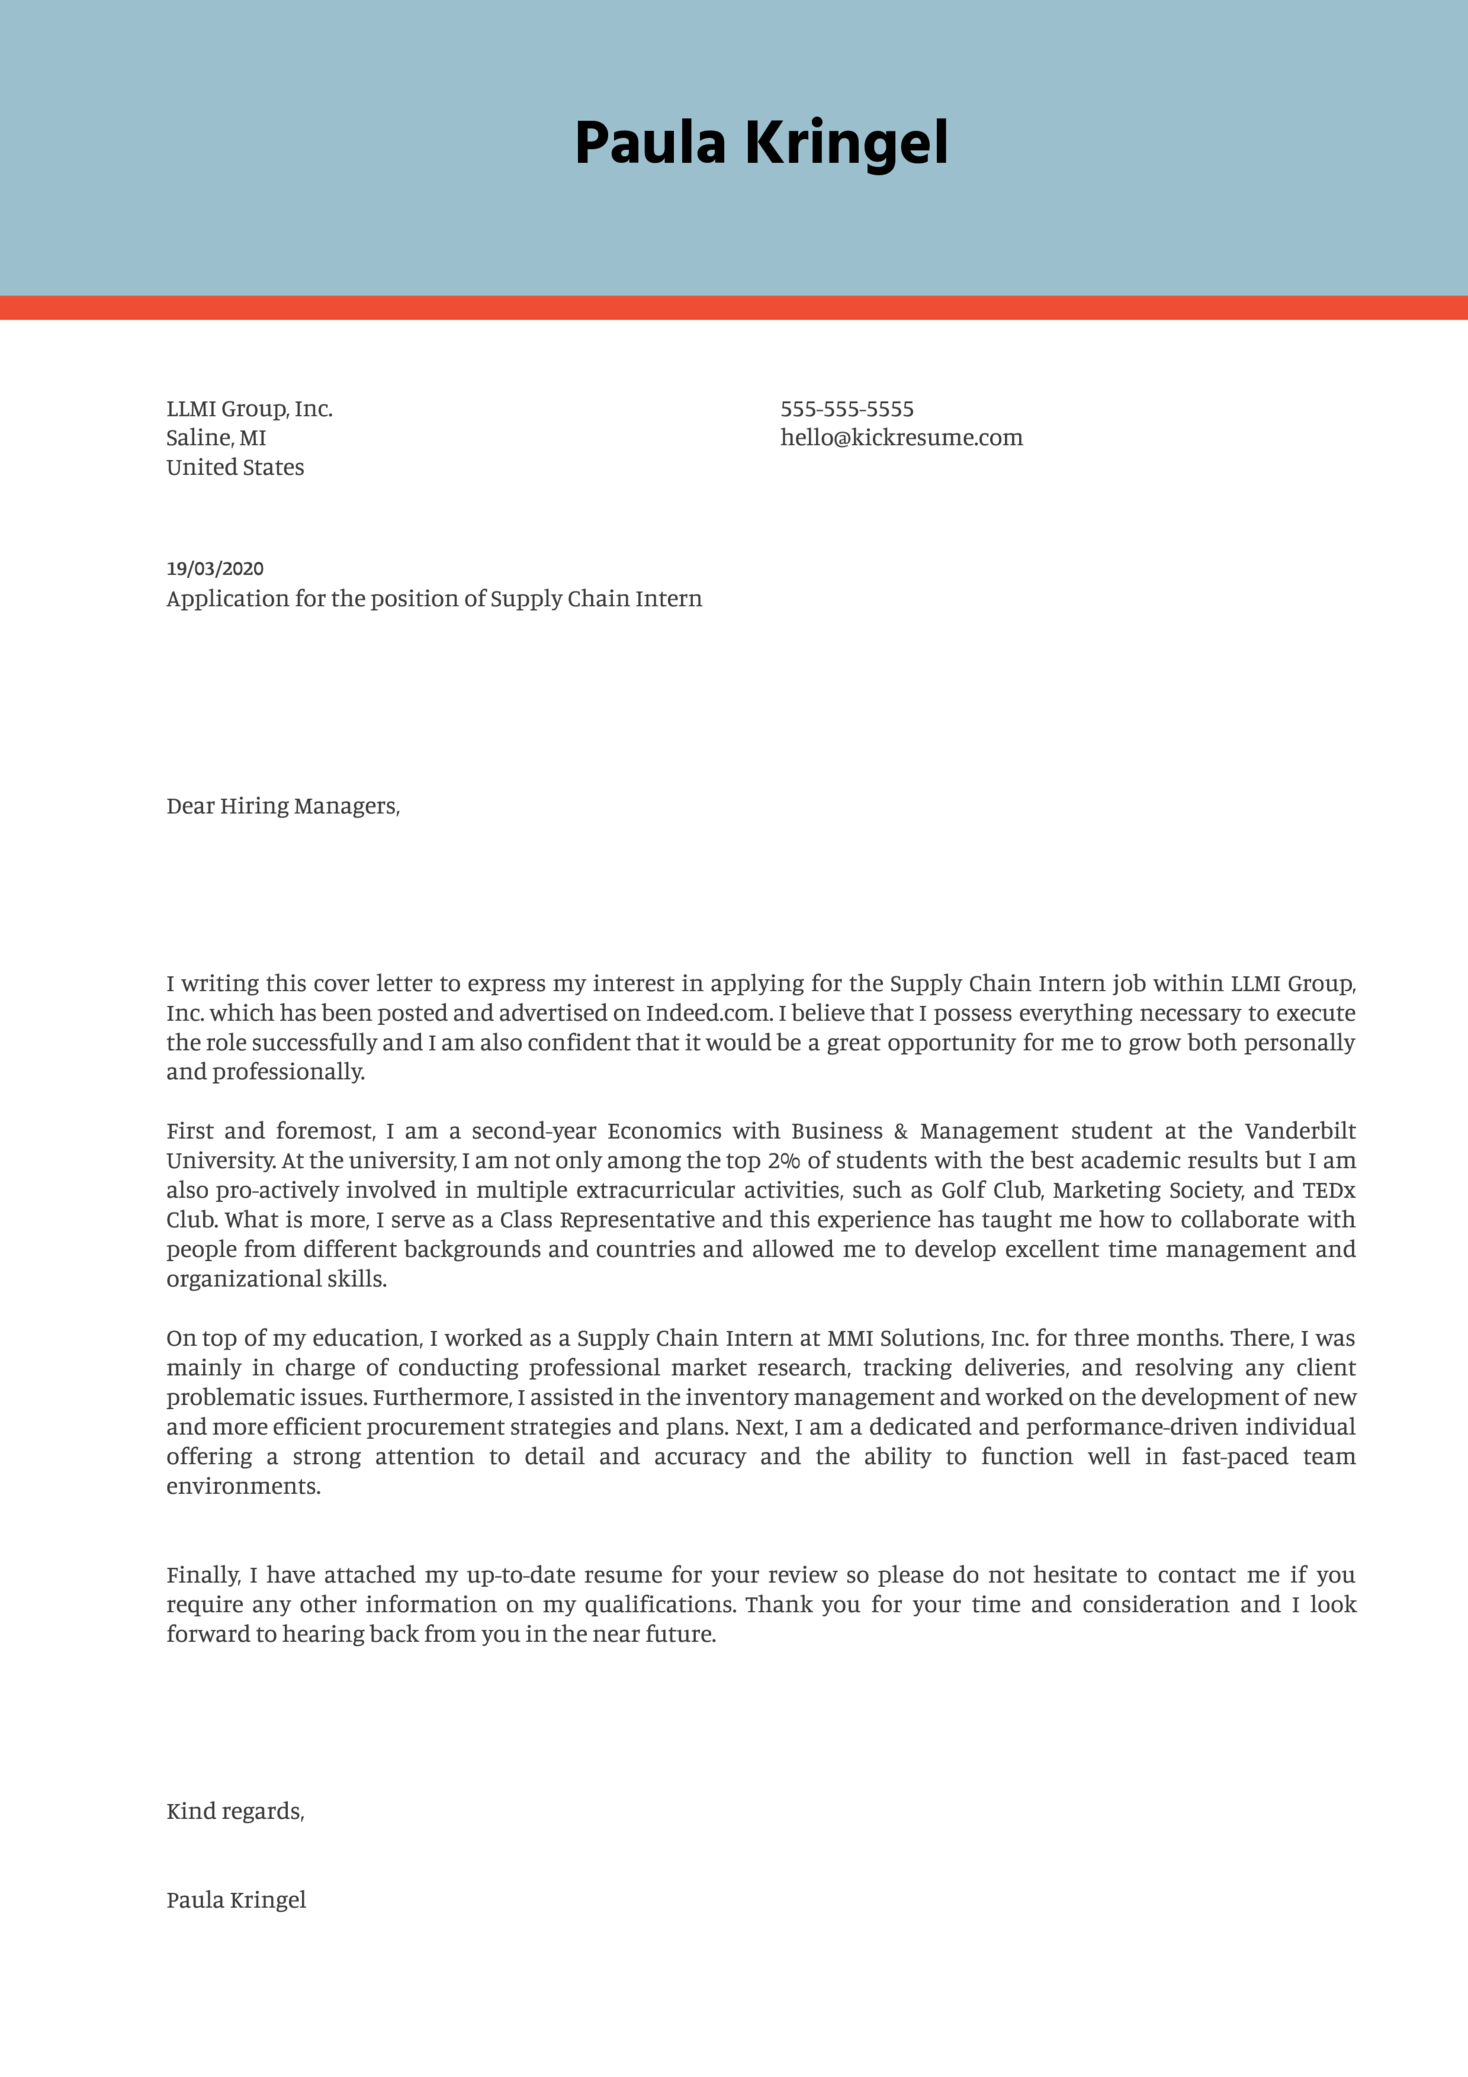 Supply Chain Internship Cover Letter Example Kickresume